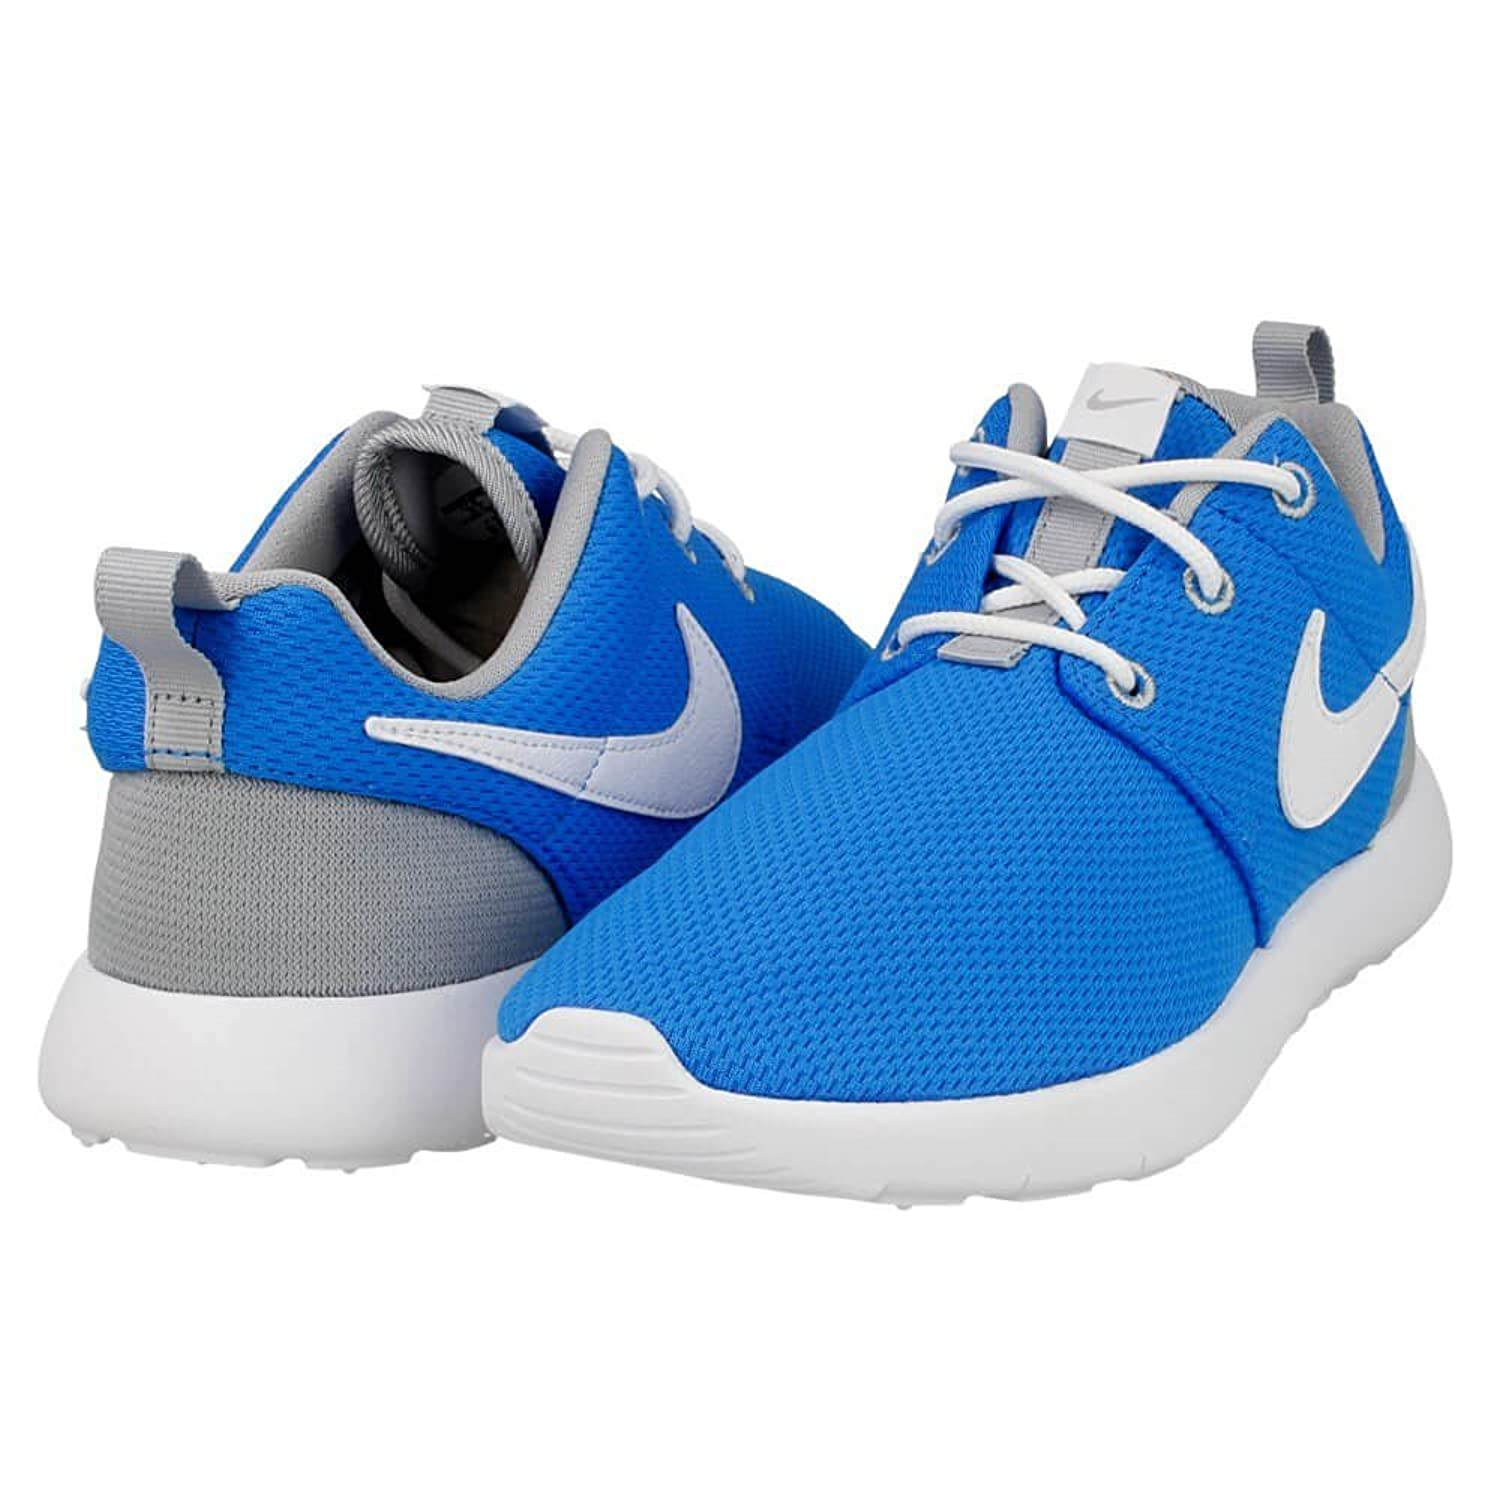 mngkf Nike - Roshe One PS - Color: Blue-Grey - Size: 2.0: Amazon.co.uk